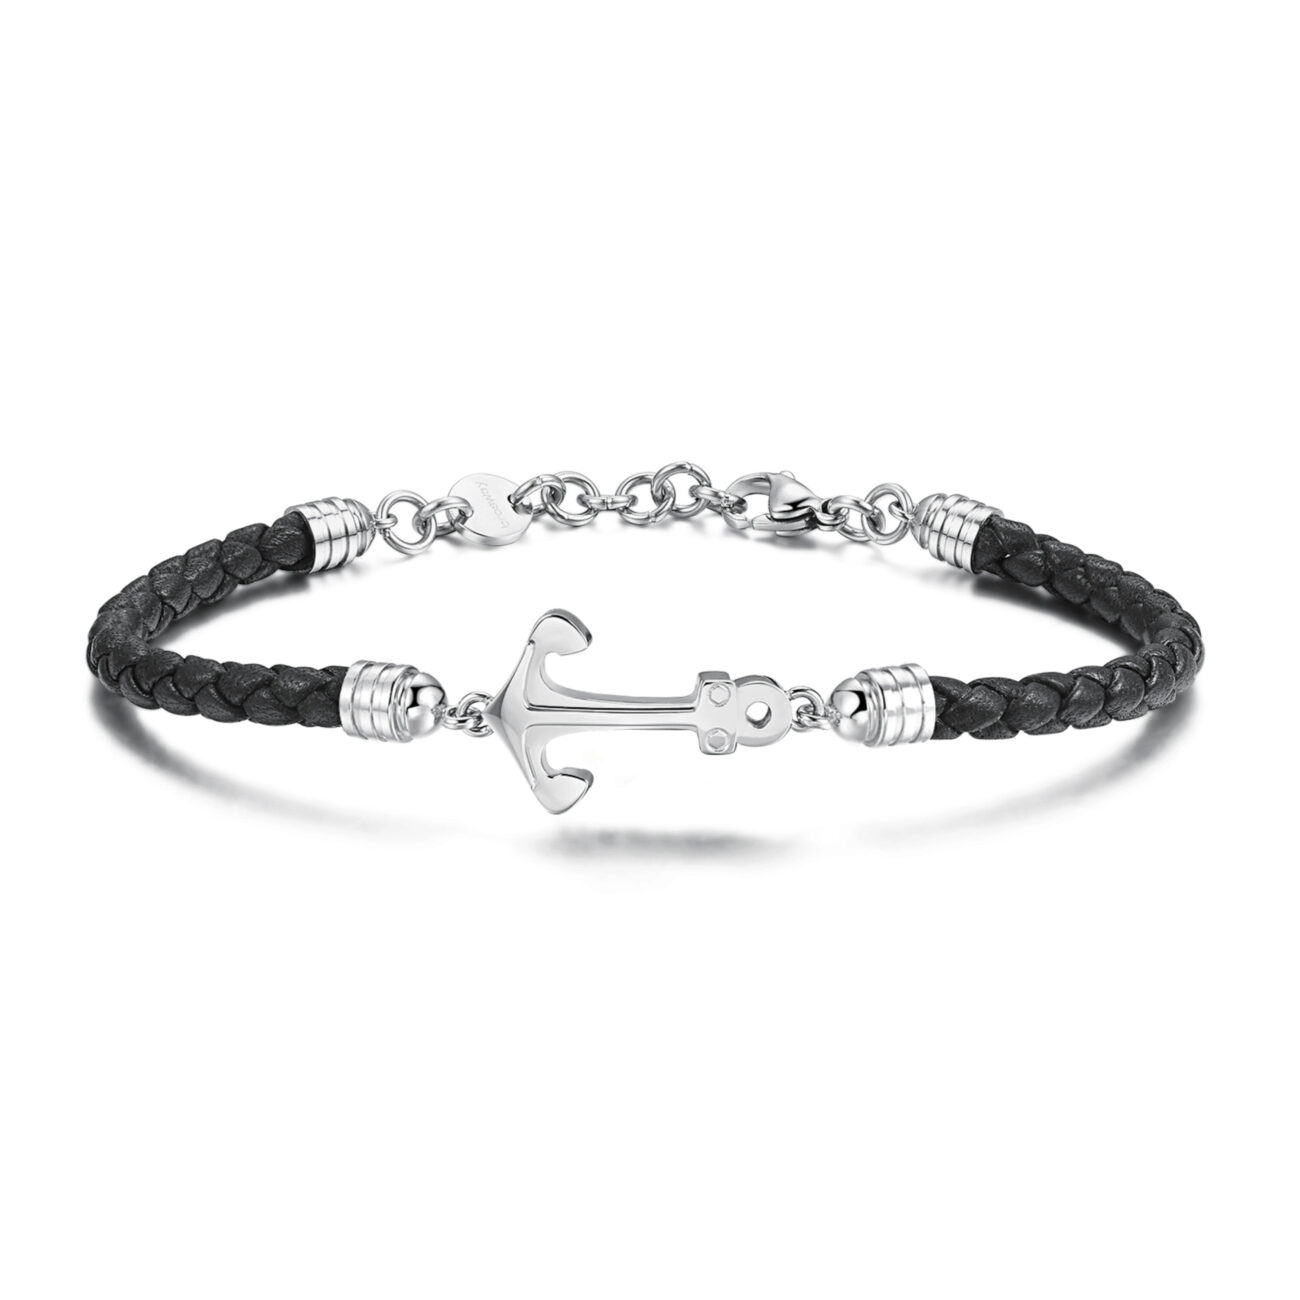 Black leather bracelet and 316L stainless steel anchor